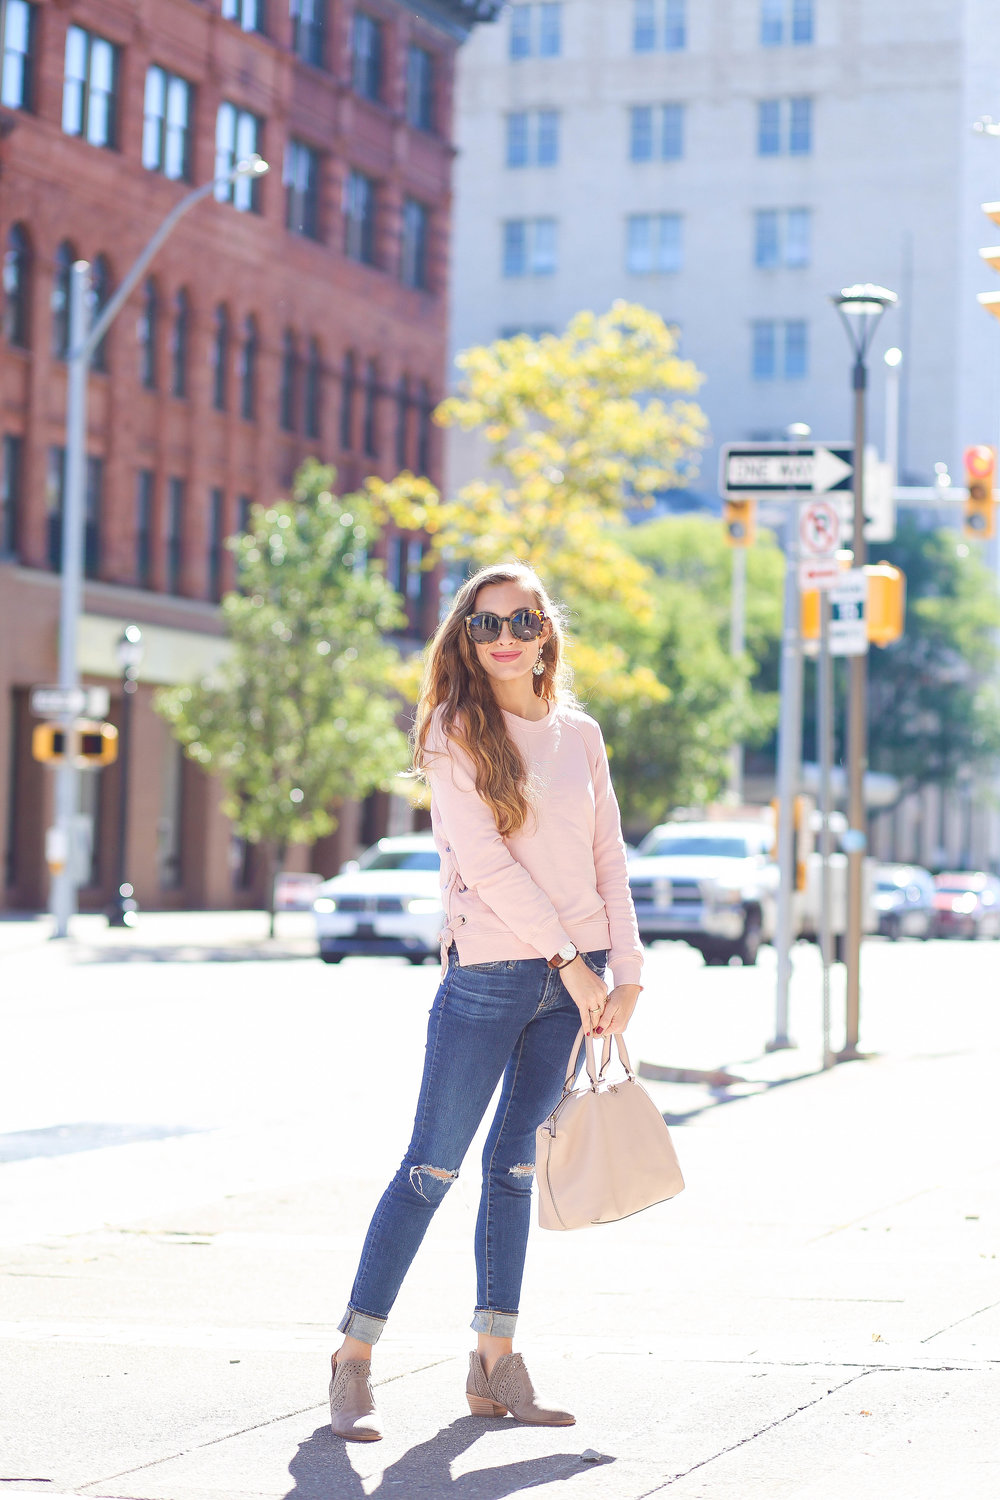 Pink Sweatshirt. Skinny Jeans. Blush Bag. Gray Booties.